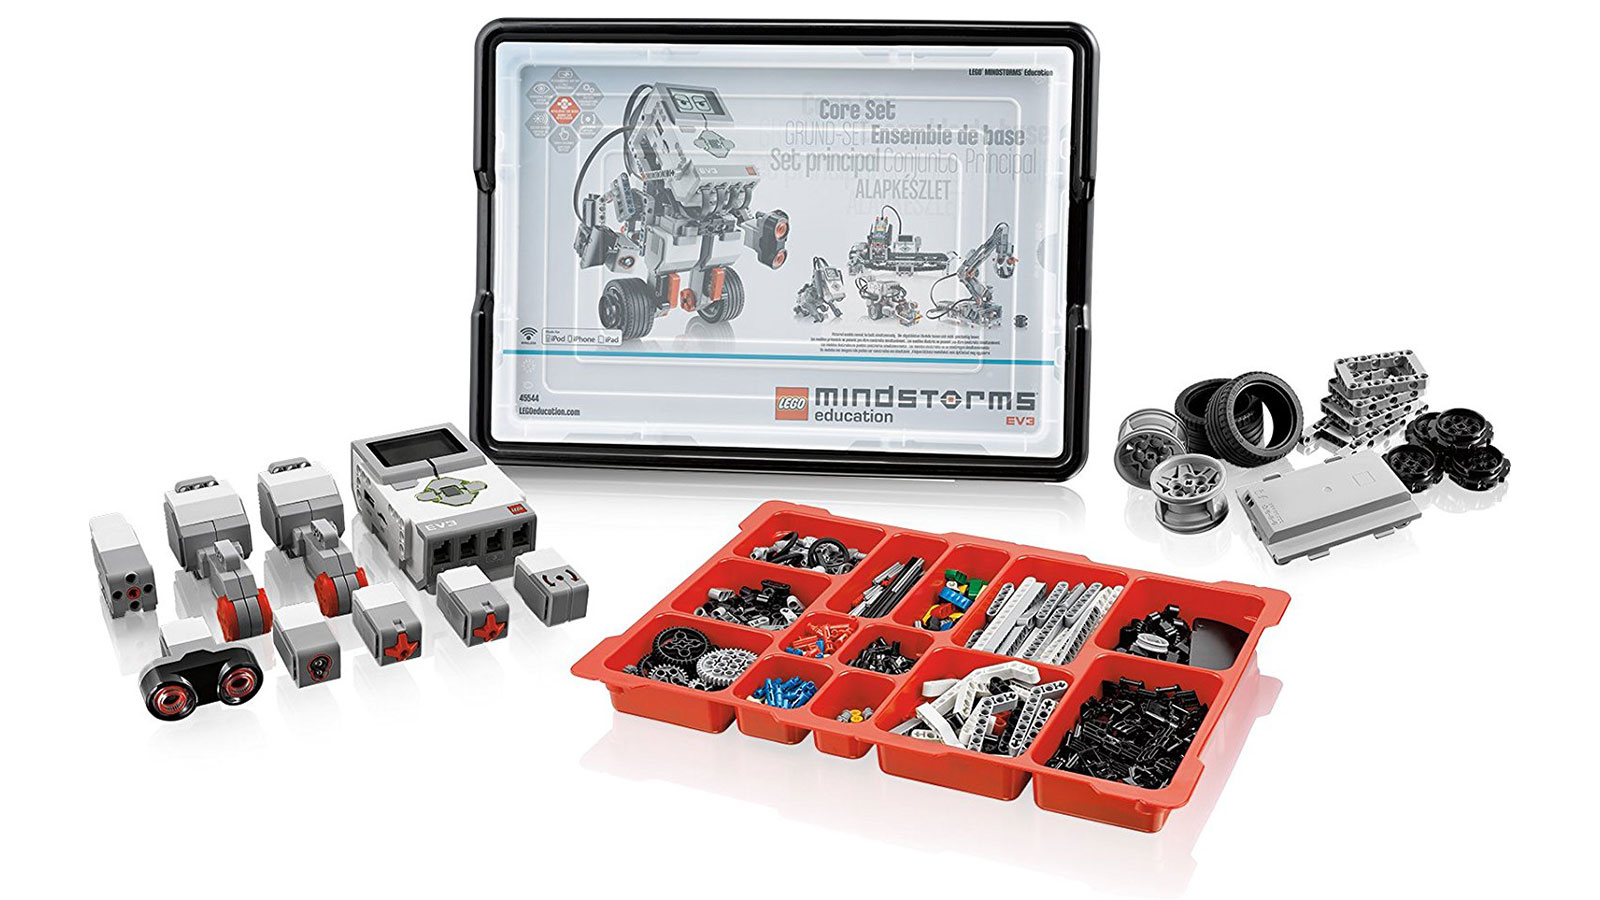 LEGO Mindstorms Buyer Guide - RCX, NXT or EV3?